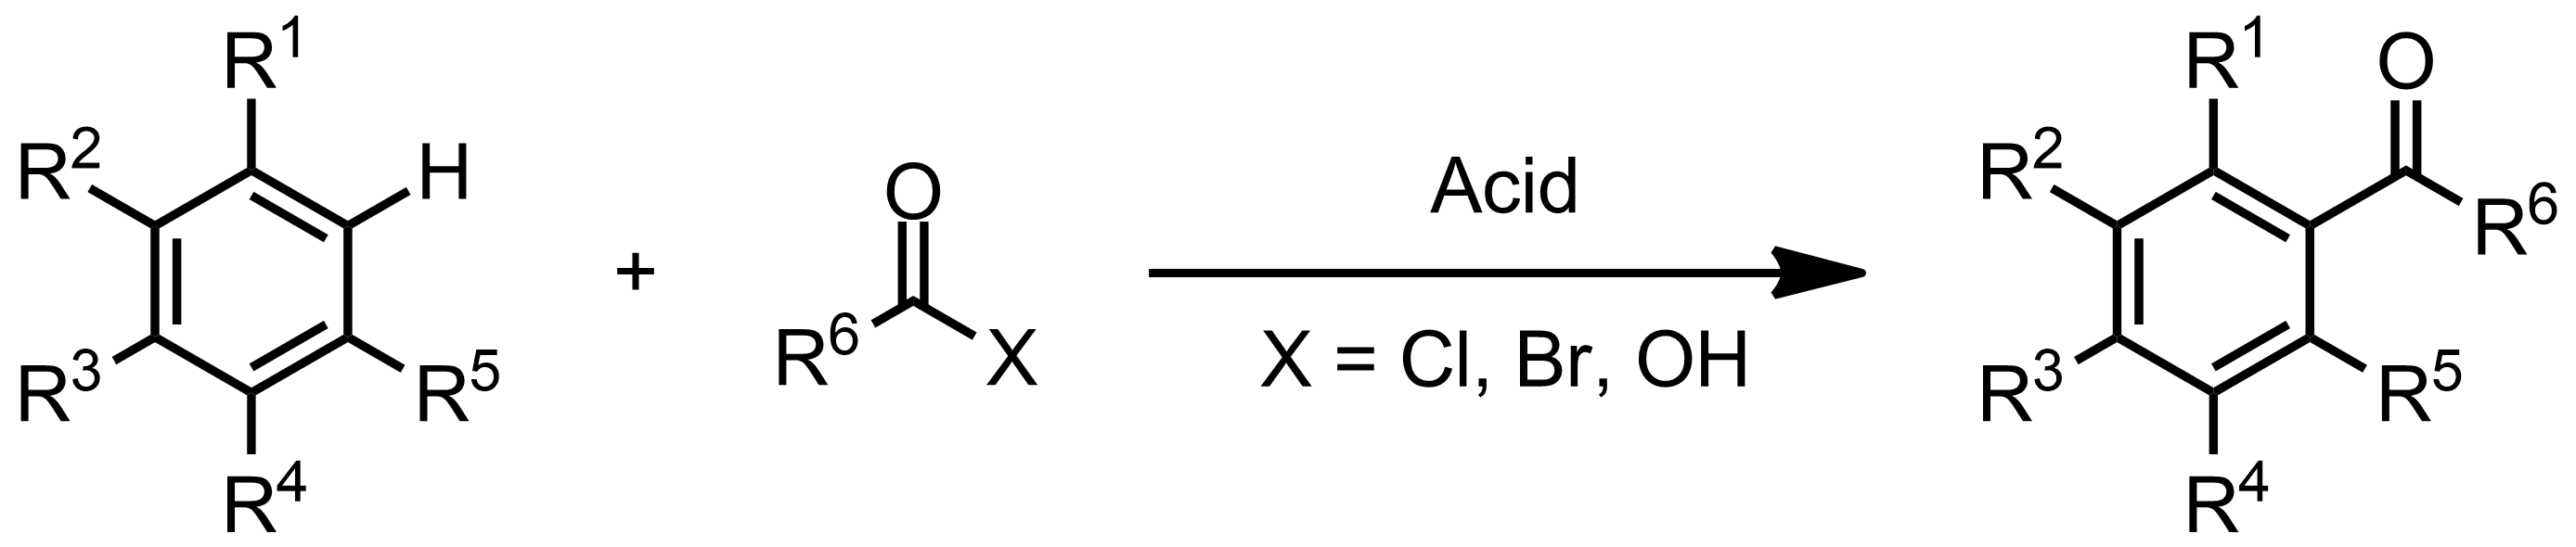 Schematic representation of the Friedel-Crafts Acylation.